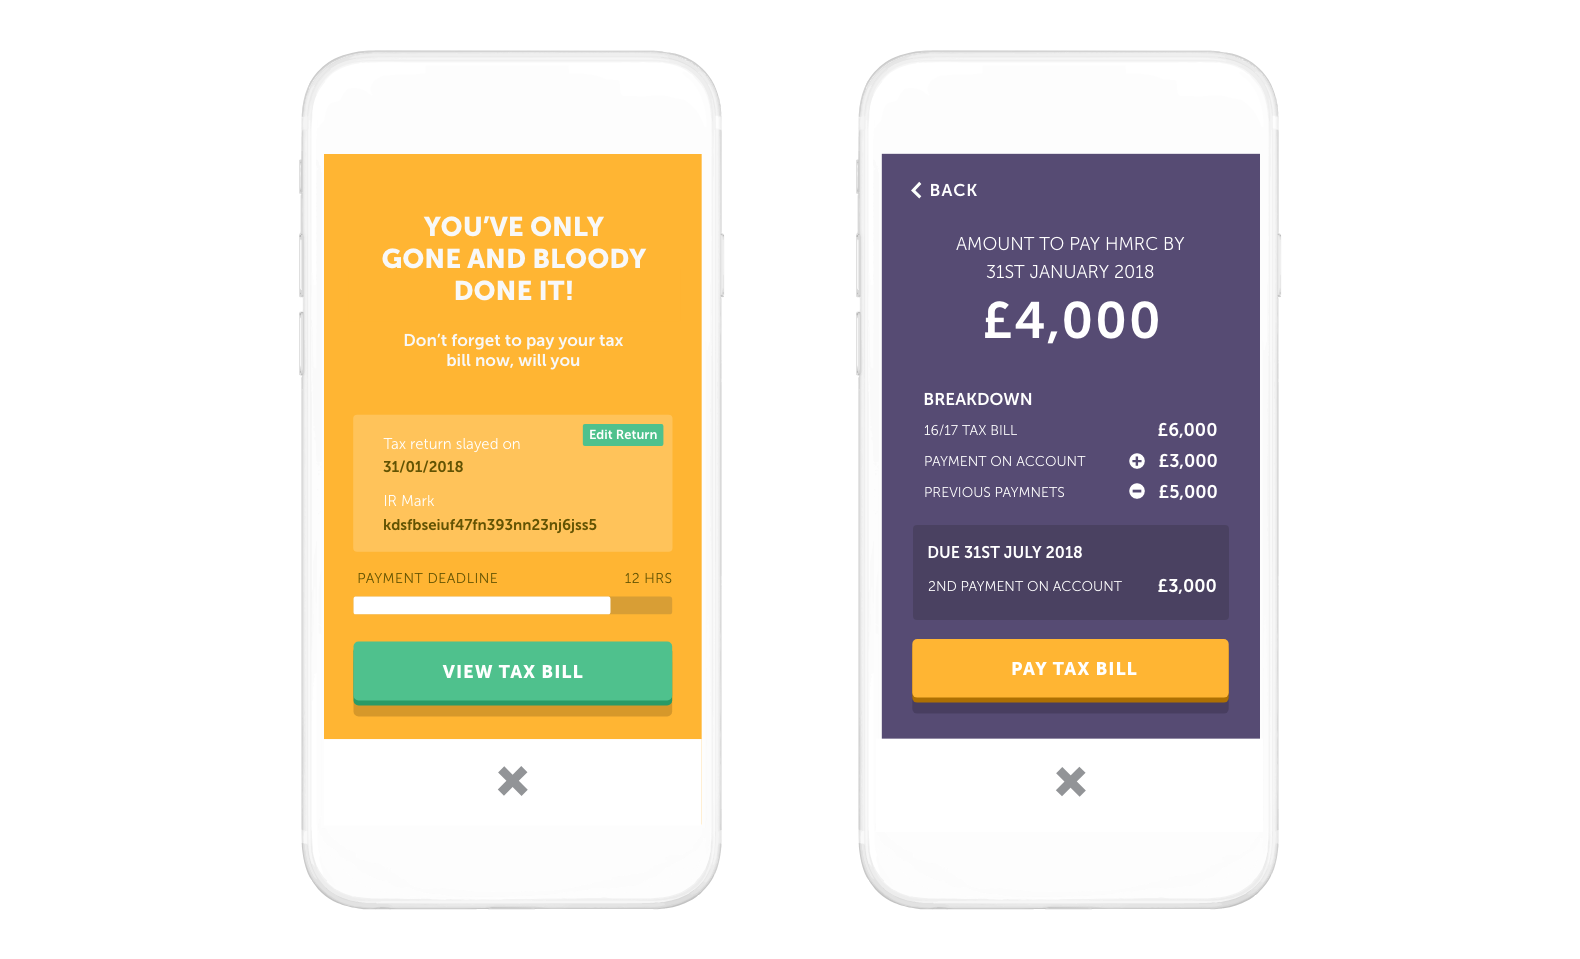 TAXO'D app - HMRC have received your tax return thanks to TAXO'D